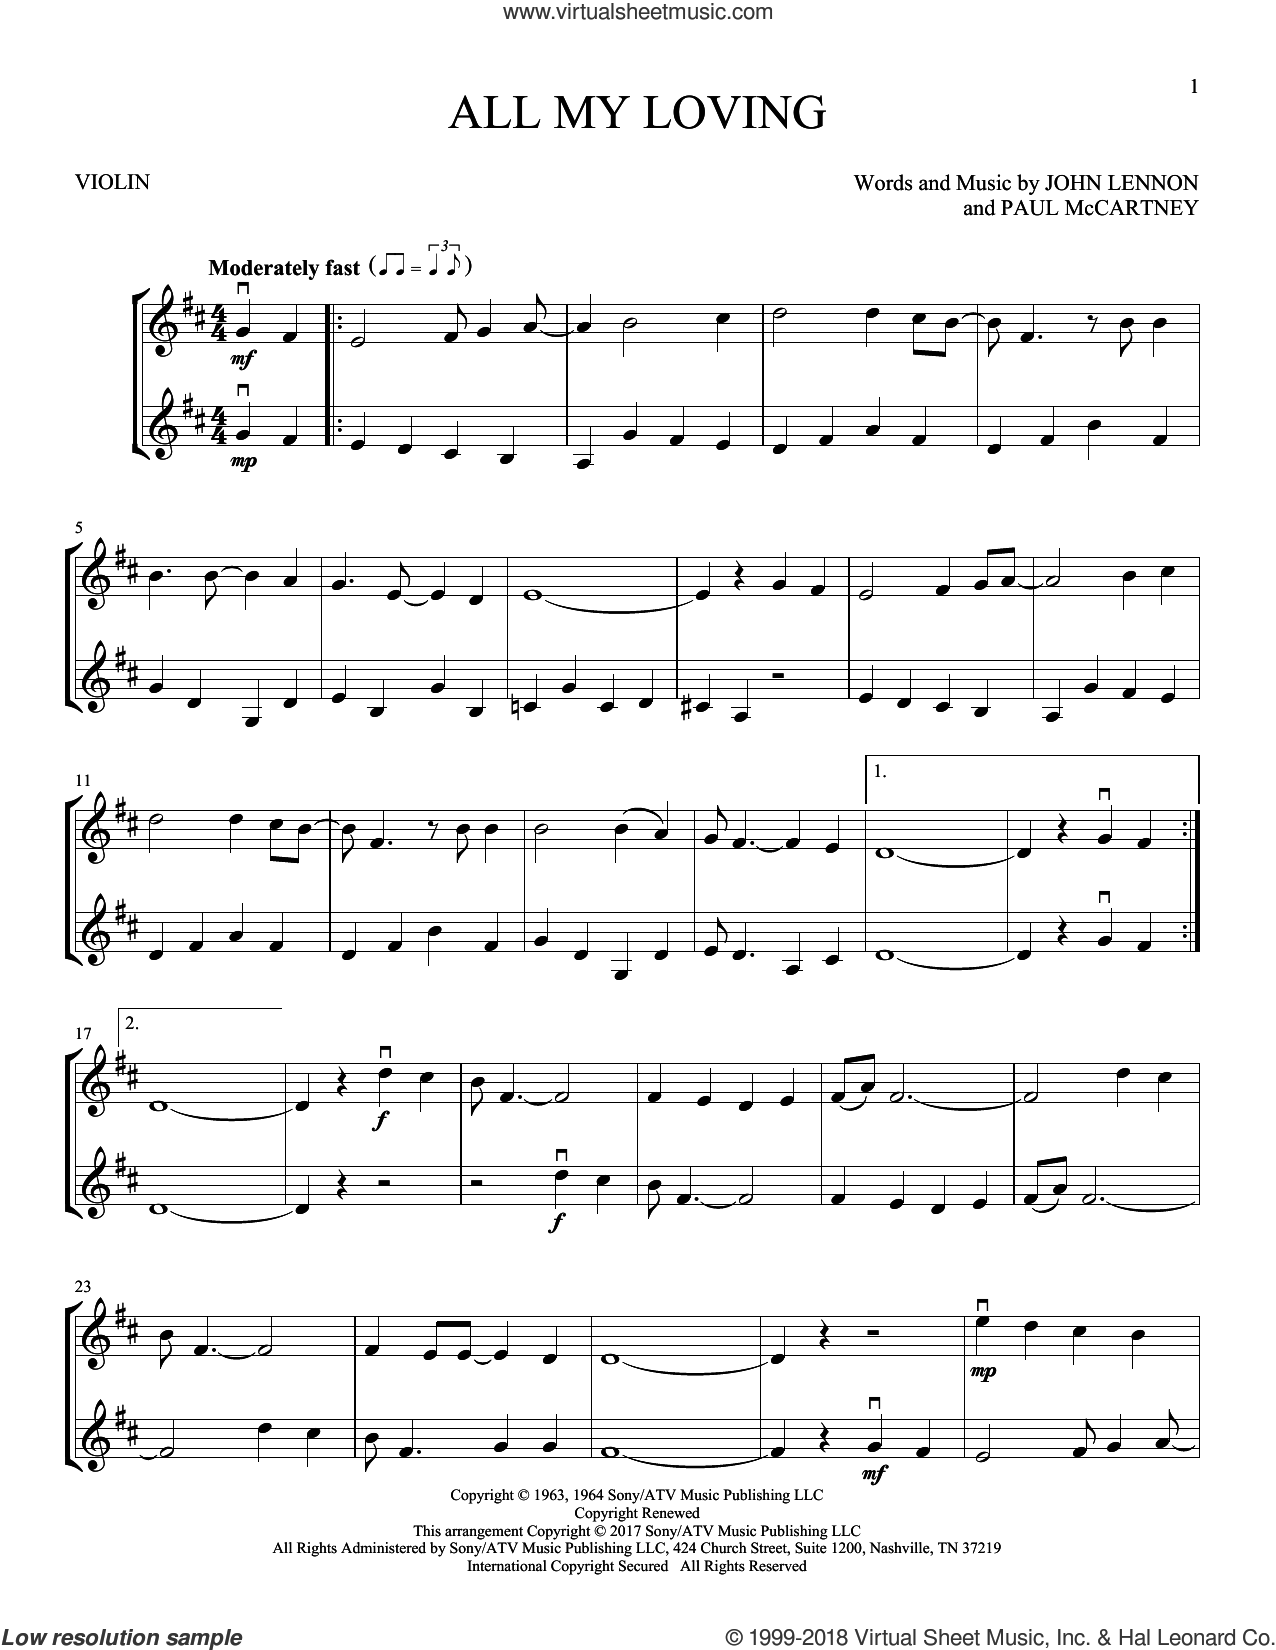 All My Loving sheet music for two violins (duets, violin duets) by The Beatles, John Lennon and Paul McCartney, intermediate skill level